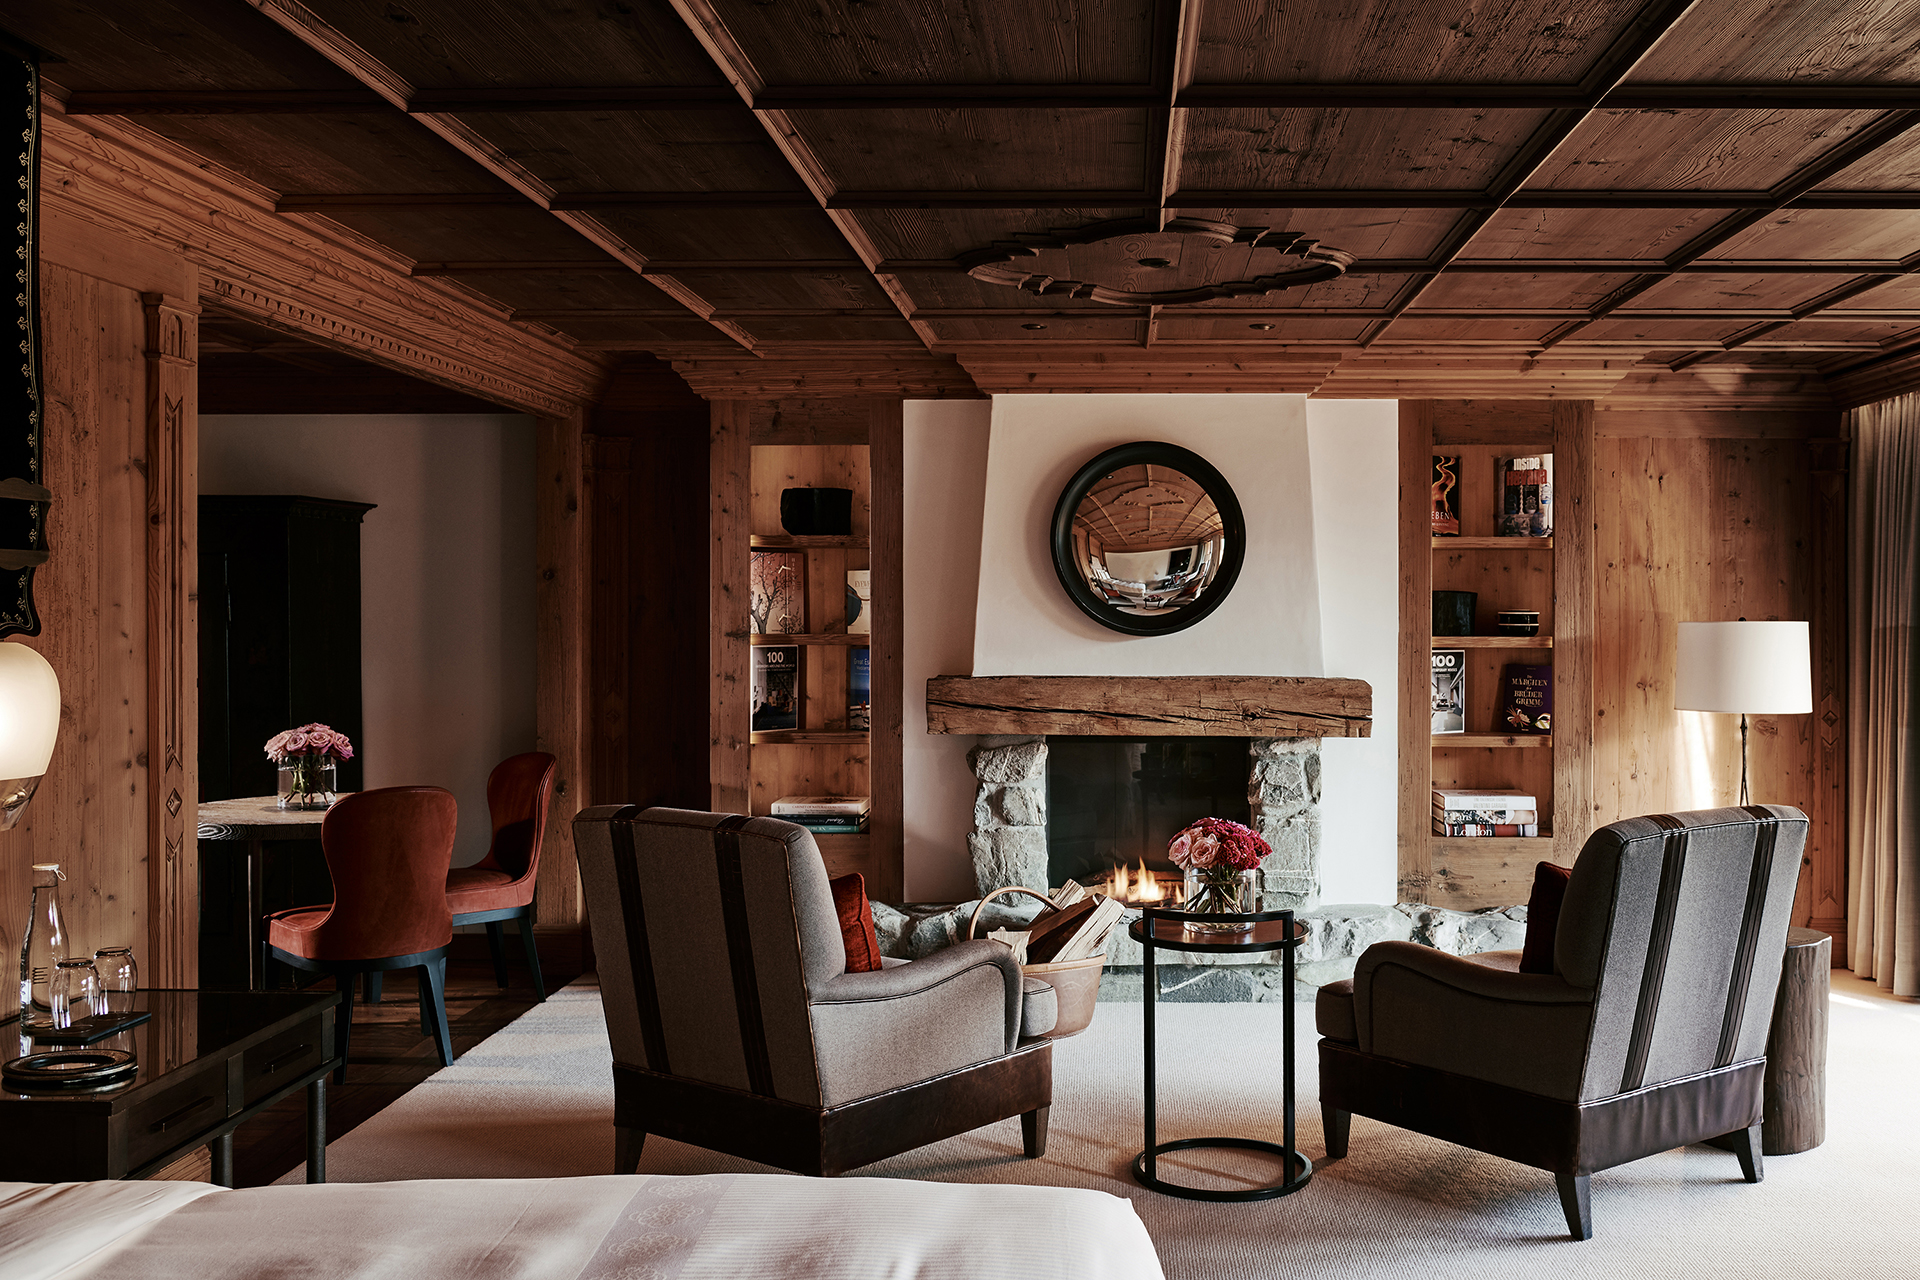 TheAlpinaGstaad_Rooms&Suites_0033_1920.jpg